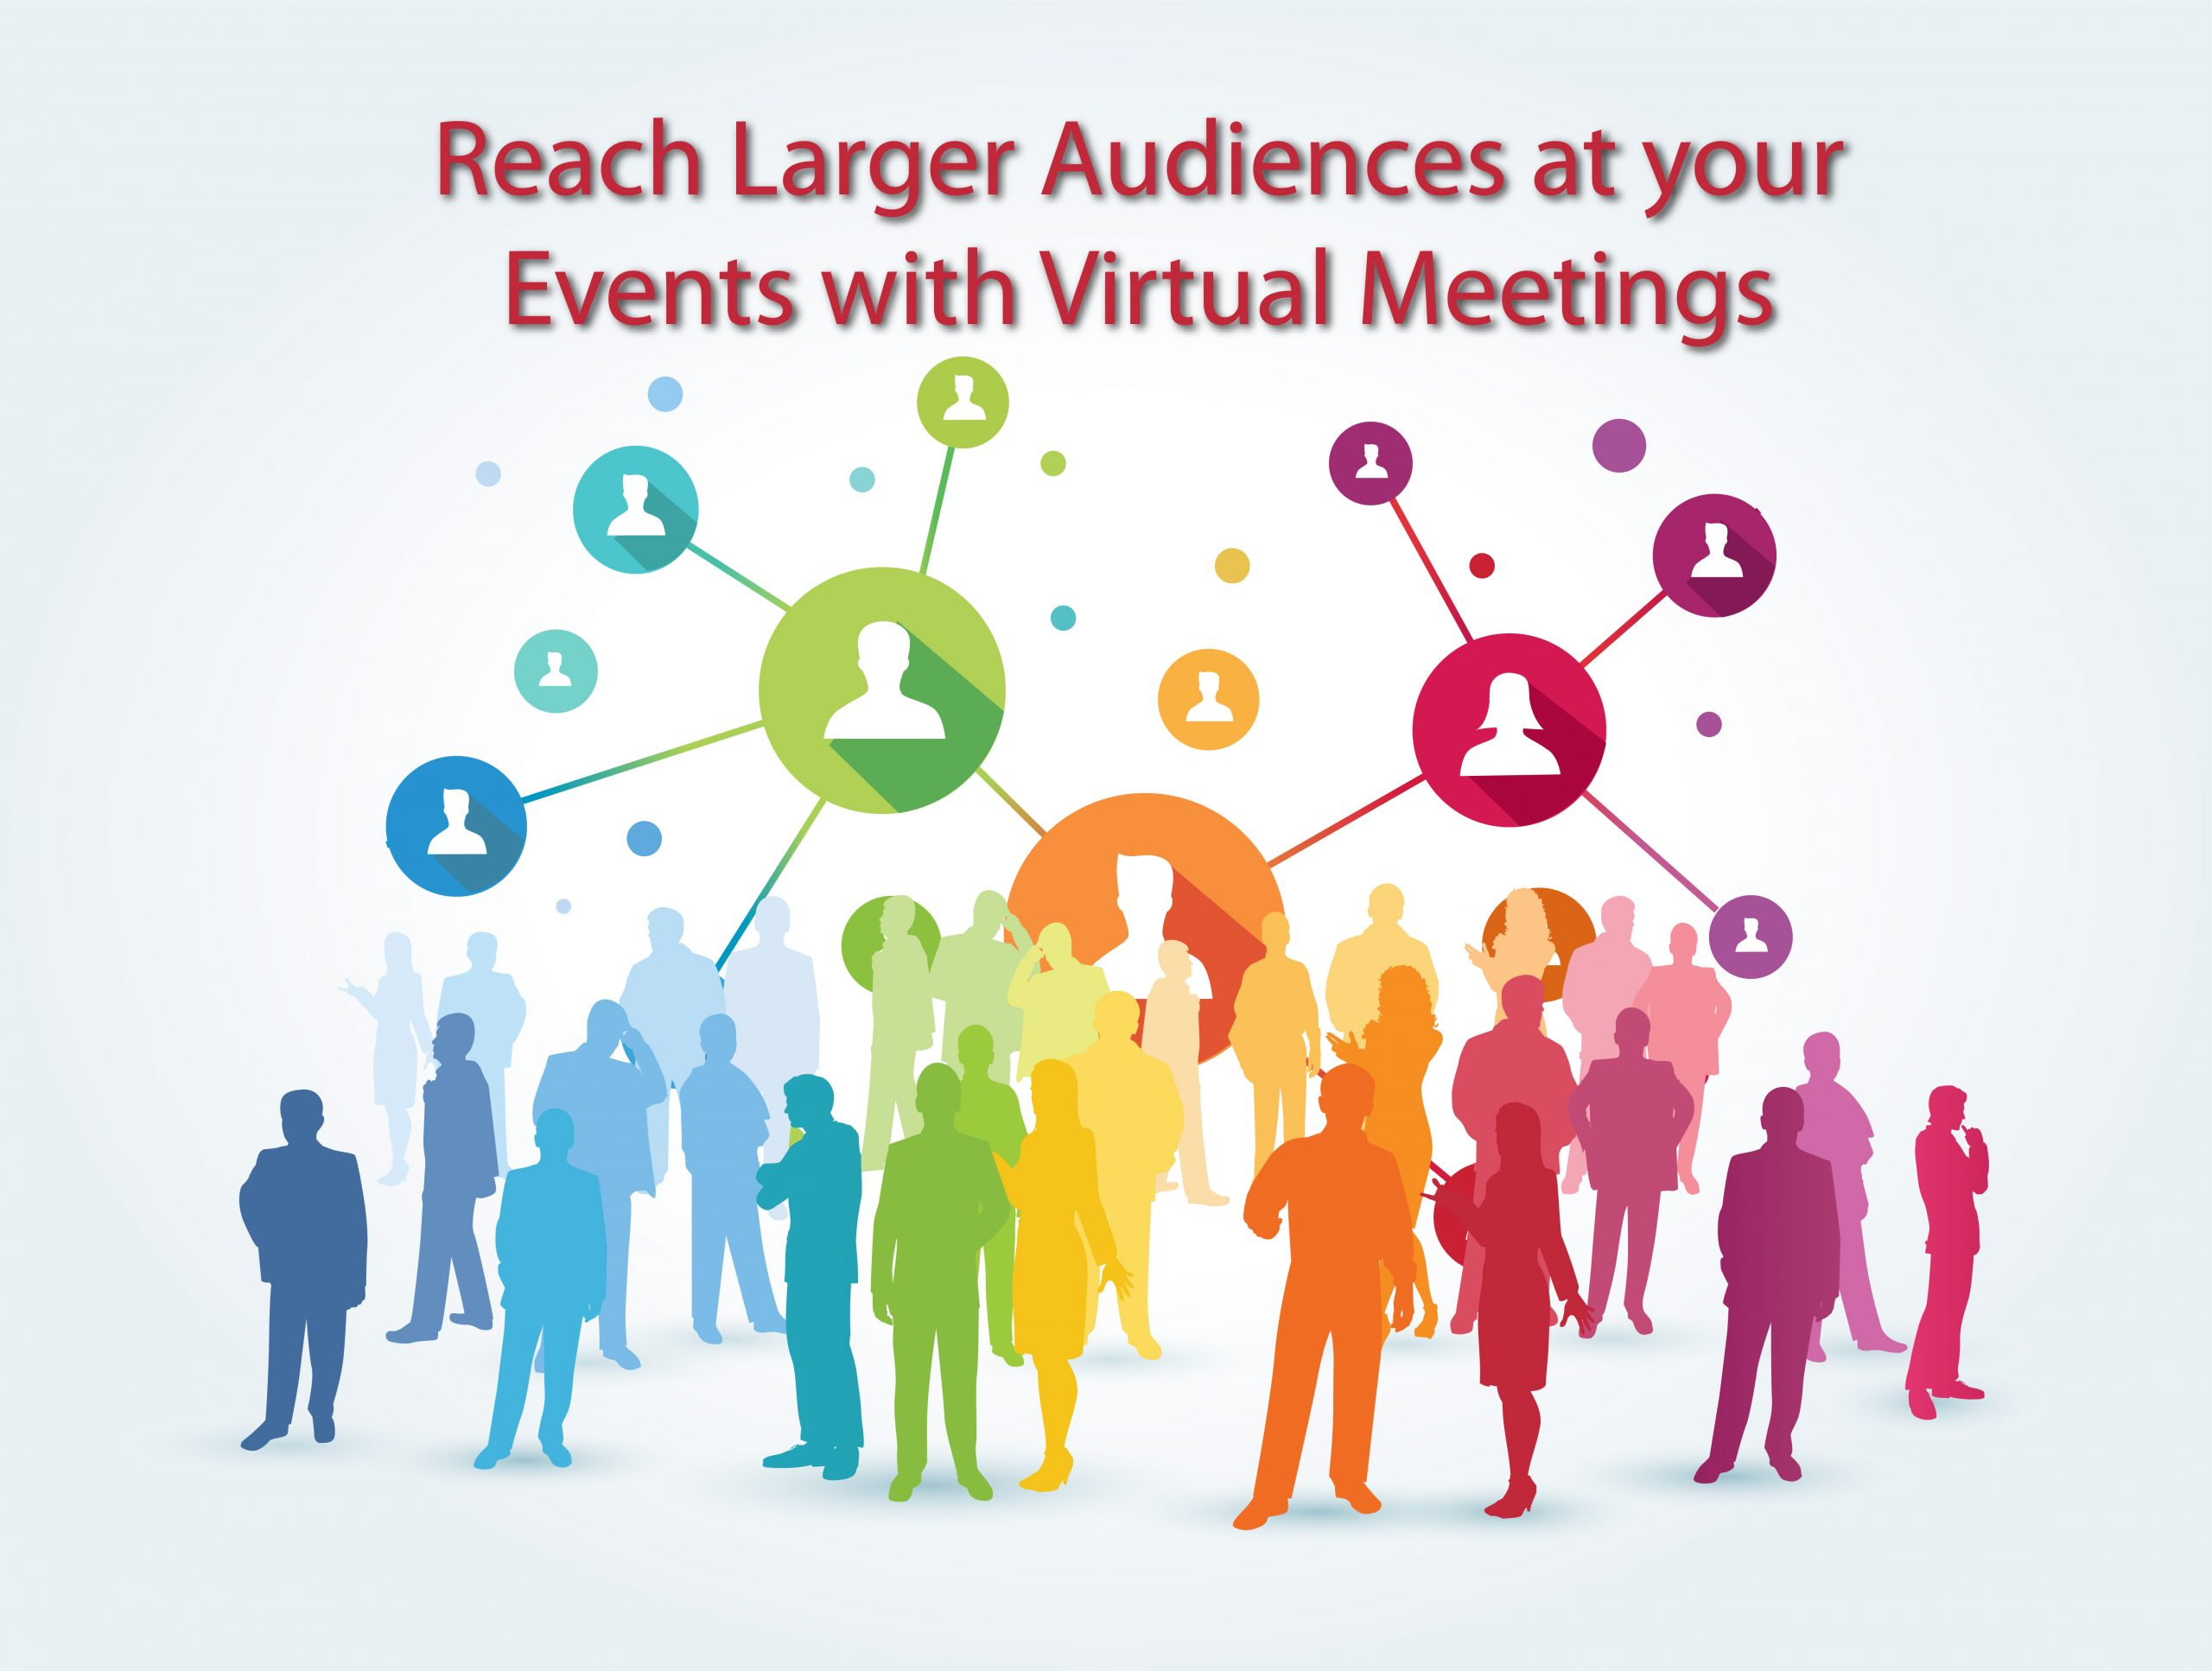 Reach Larger Audiences at your Events with Virtual Meetings